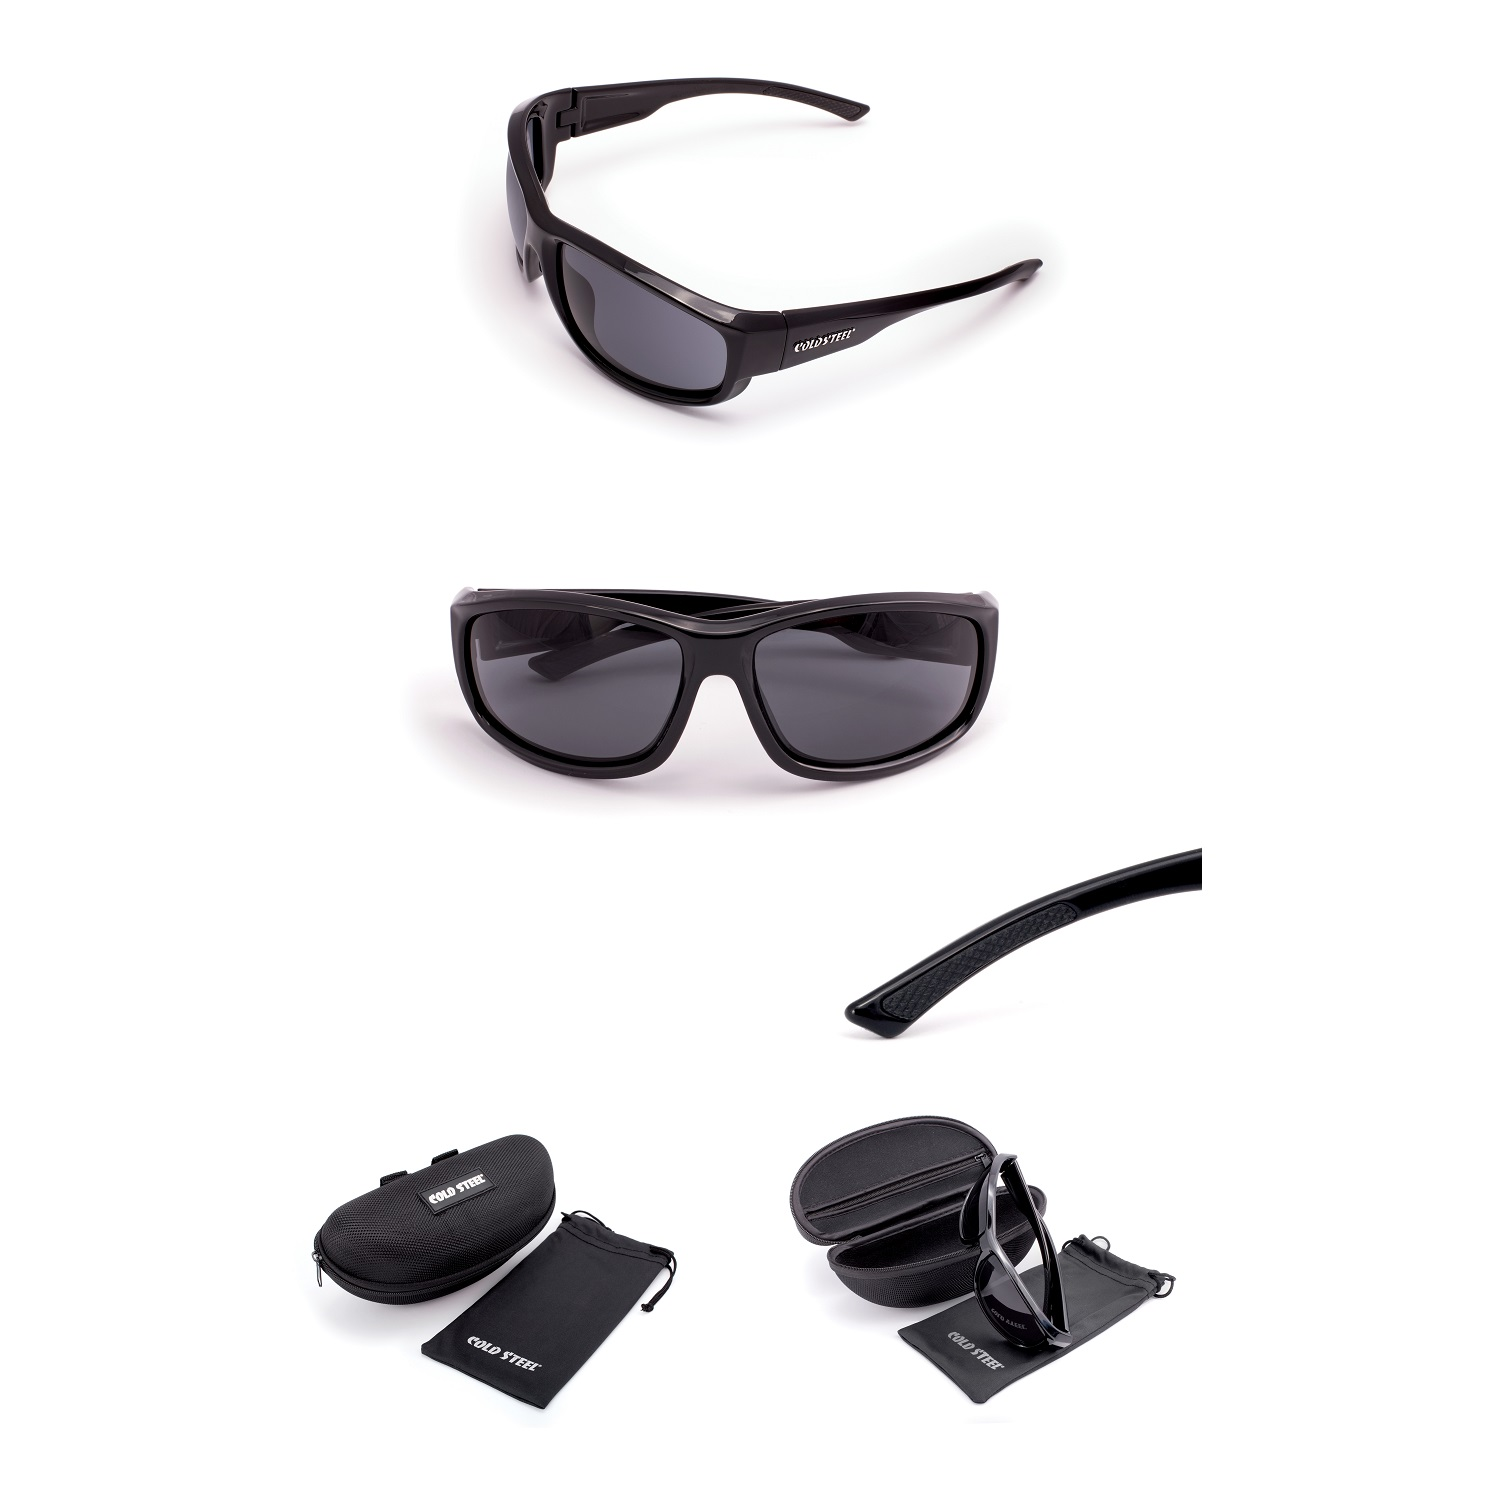 Battle Shades Mark II, Black Gloss Frame, Gray Lens